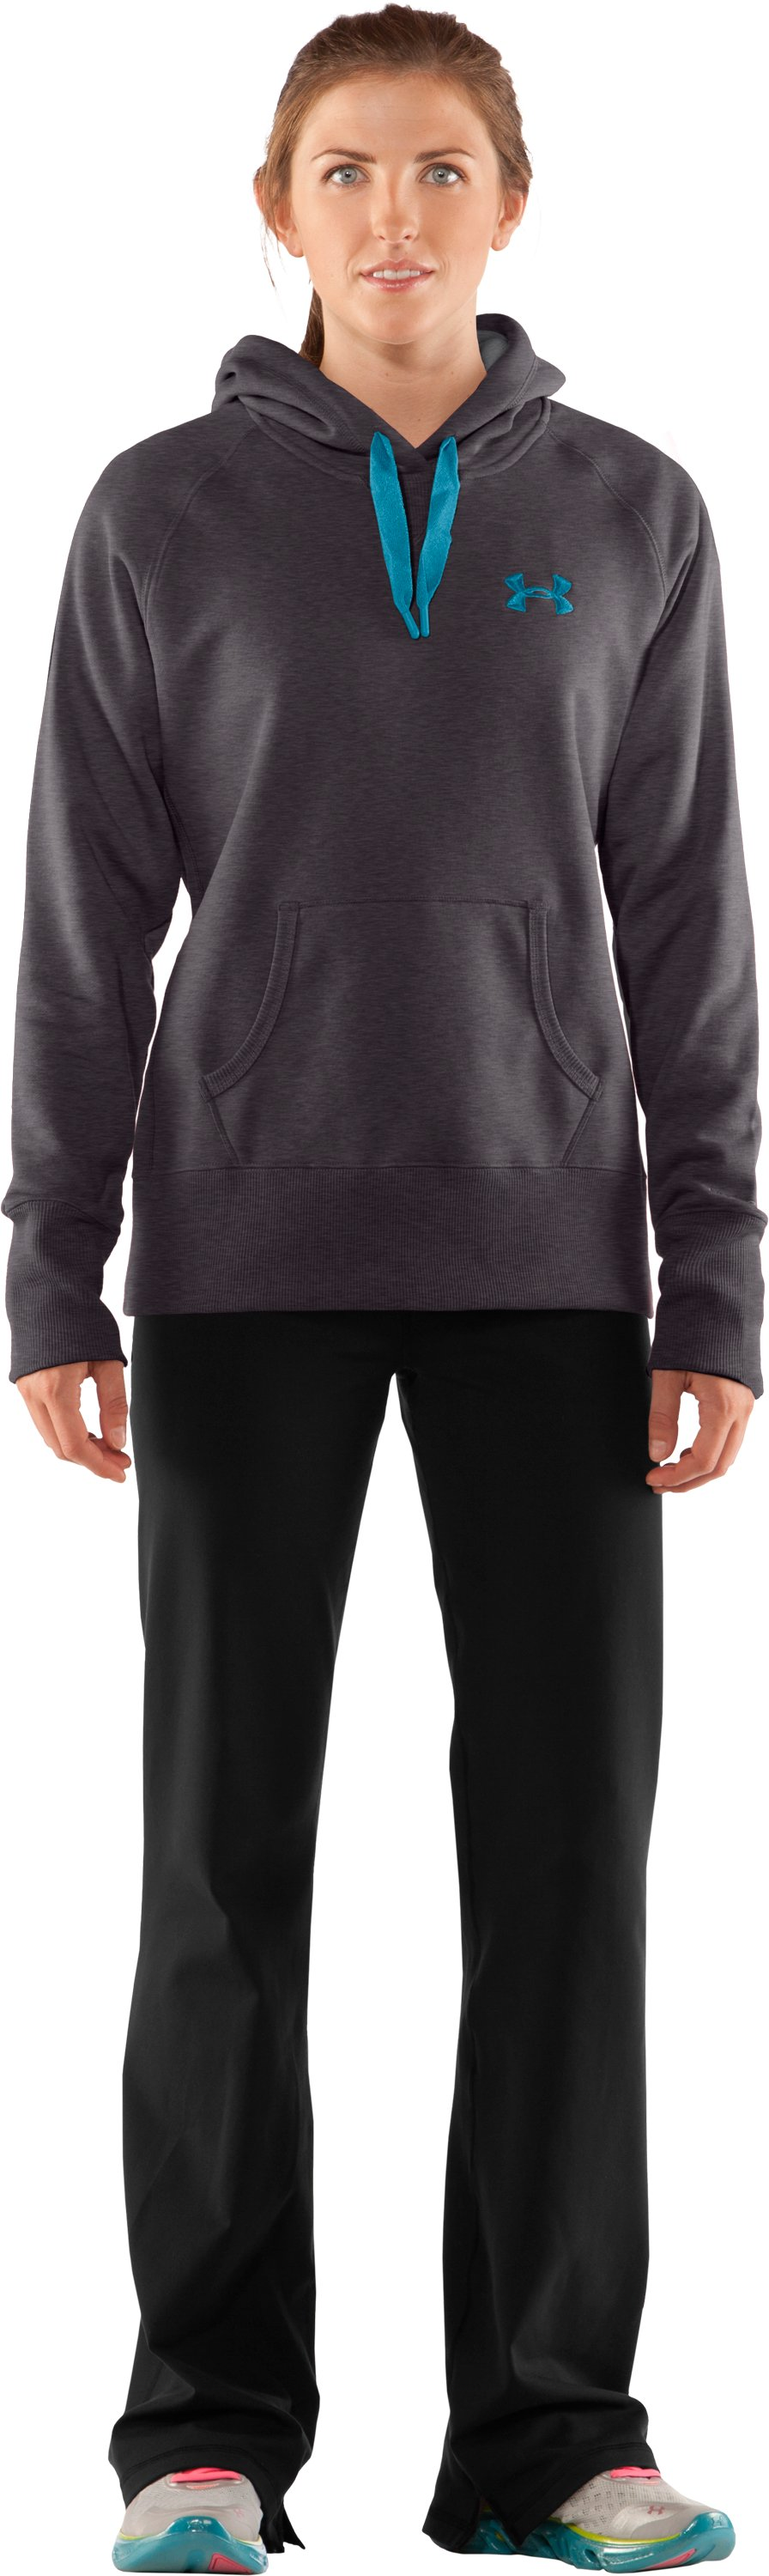 Women's Charged Cotton® Storm Hoodie, Carbon Heather, Front